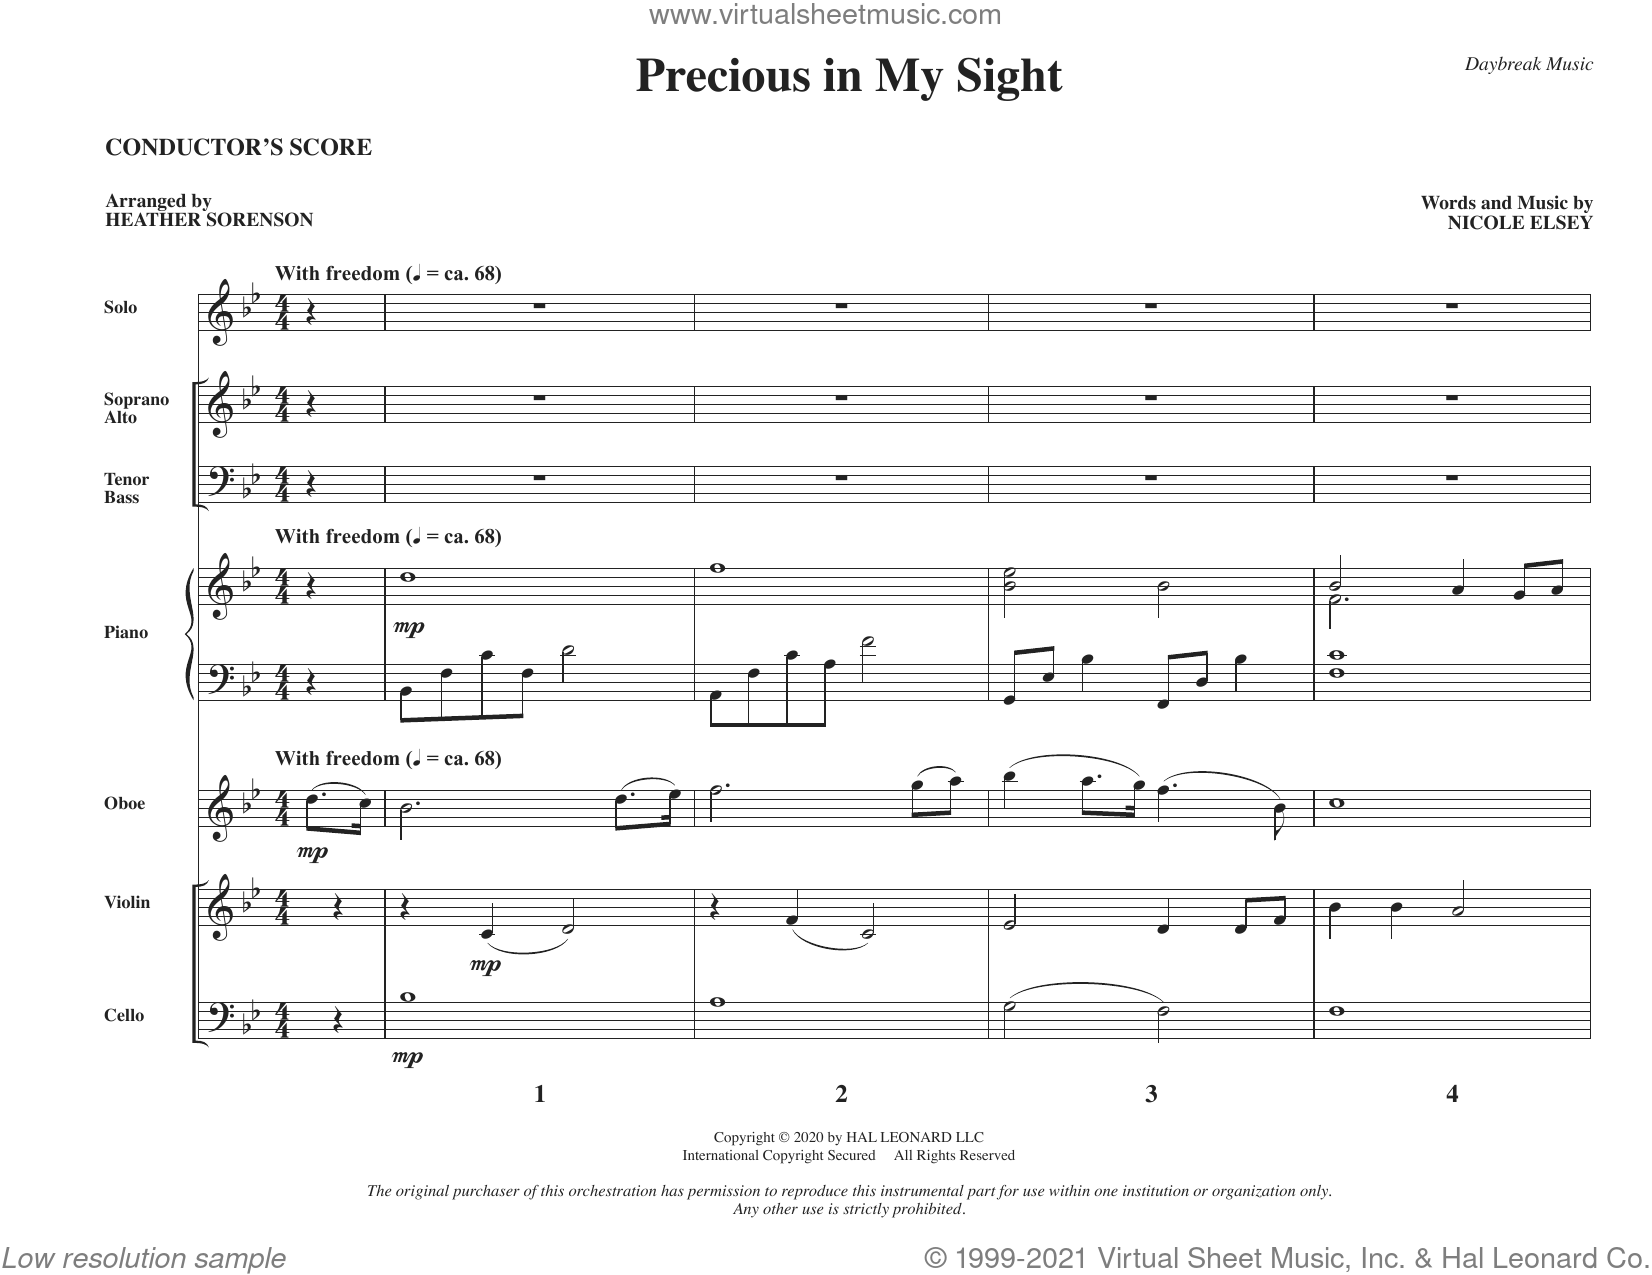 Precious in My Sight (arr. Heather Sorenson) (COMPLETE) sheet music for orchestra/band by Heather Sorenson and Nicole Elsey, intermediate skill level